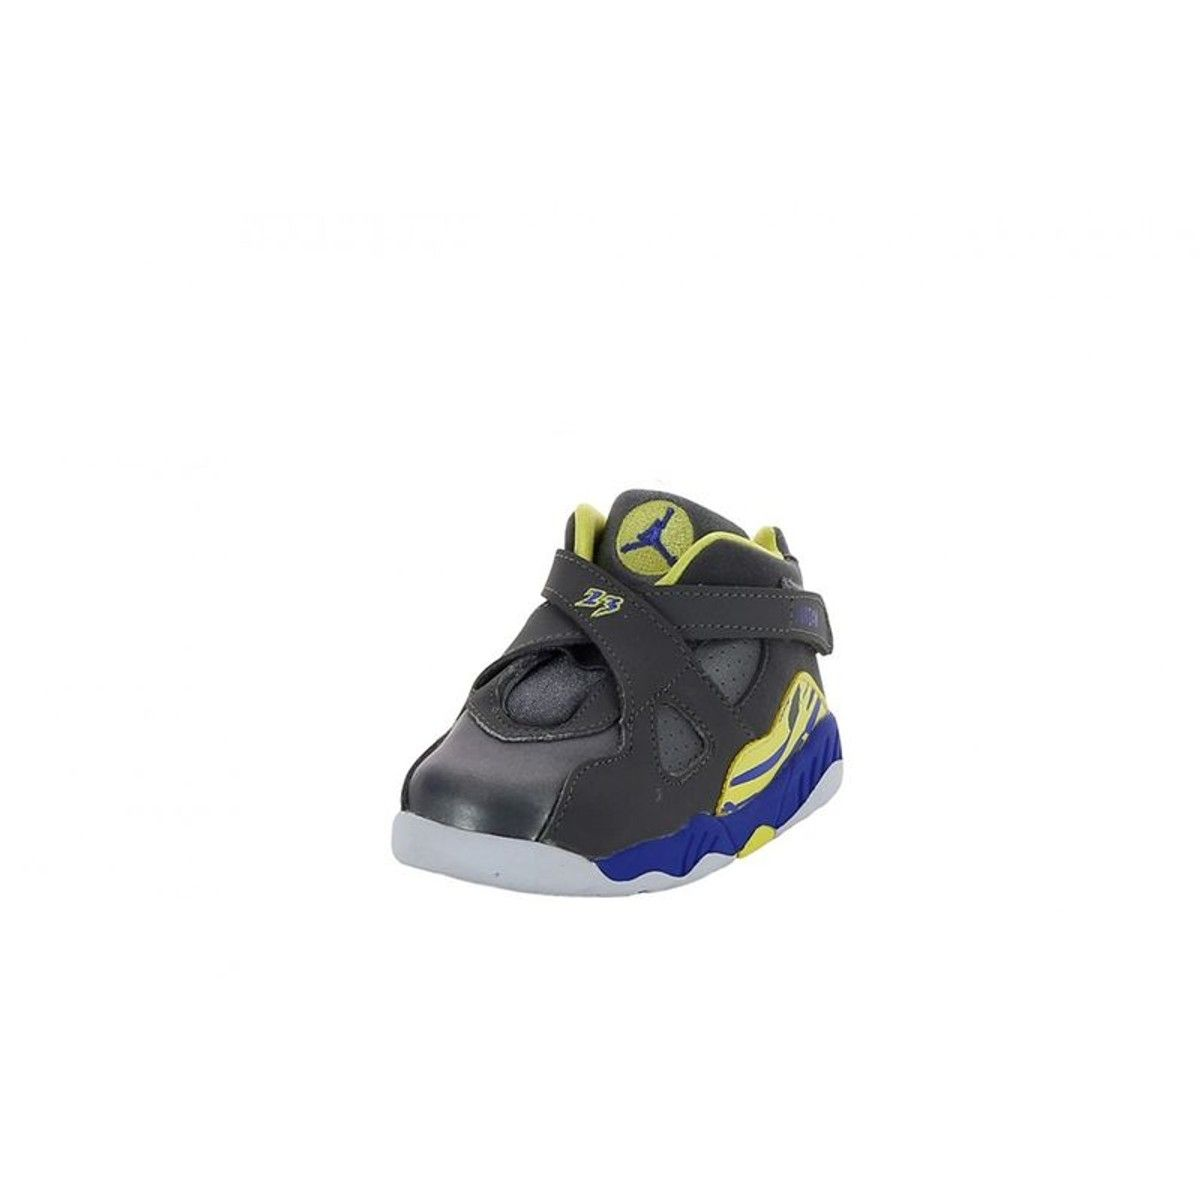 meilleur authentique 50227 5a76a Basket Air Jordan 8 Retro Bébé - Taille : 22 | Products ...